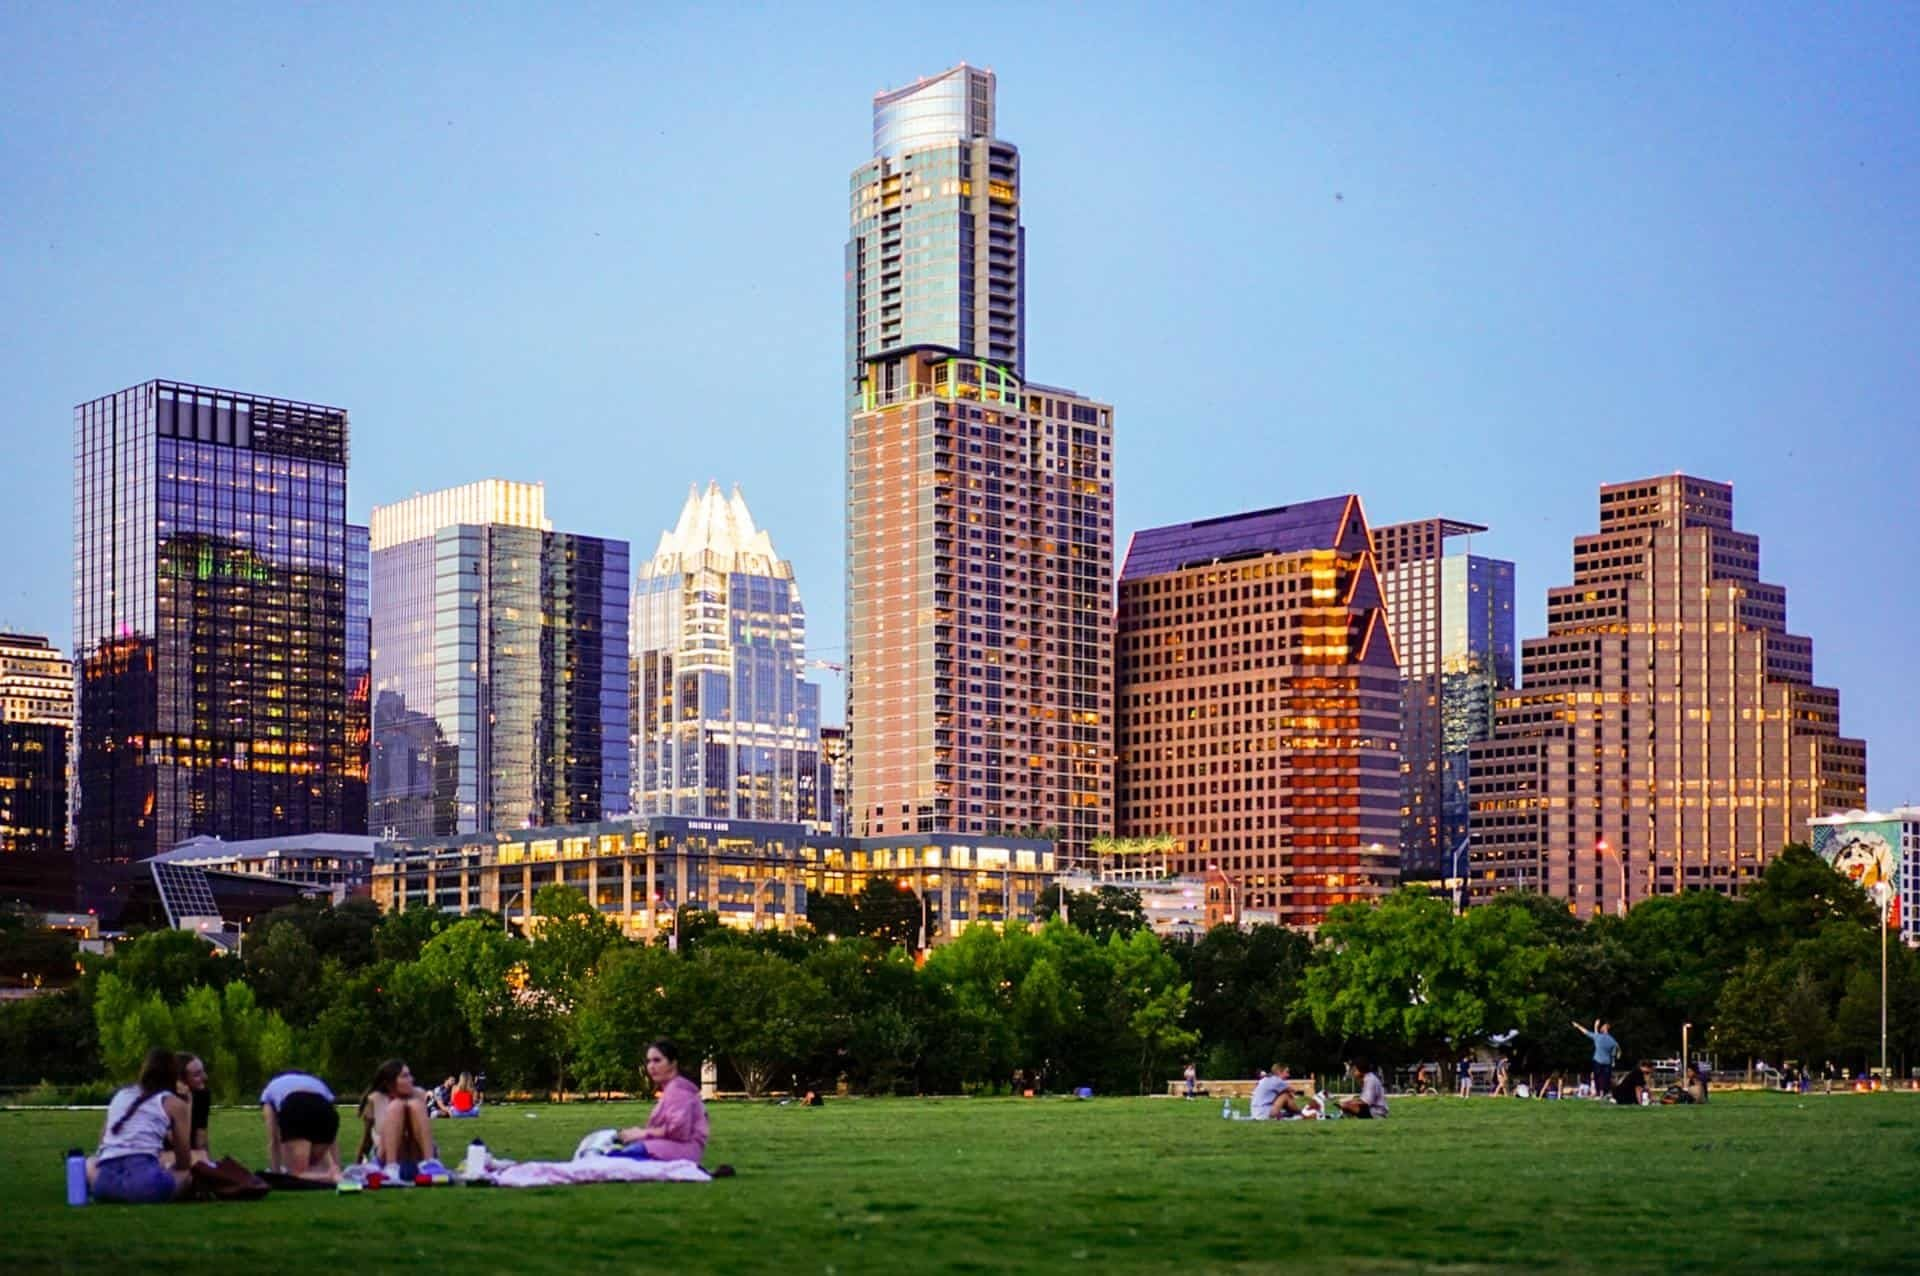 small groups of people sitting in the grass in front of the downtown Austin skyline